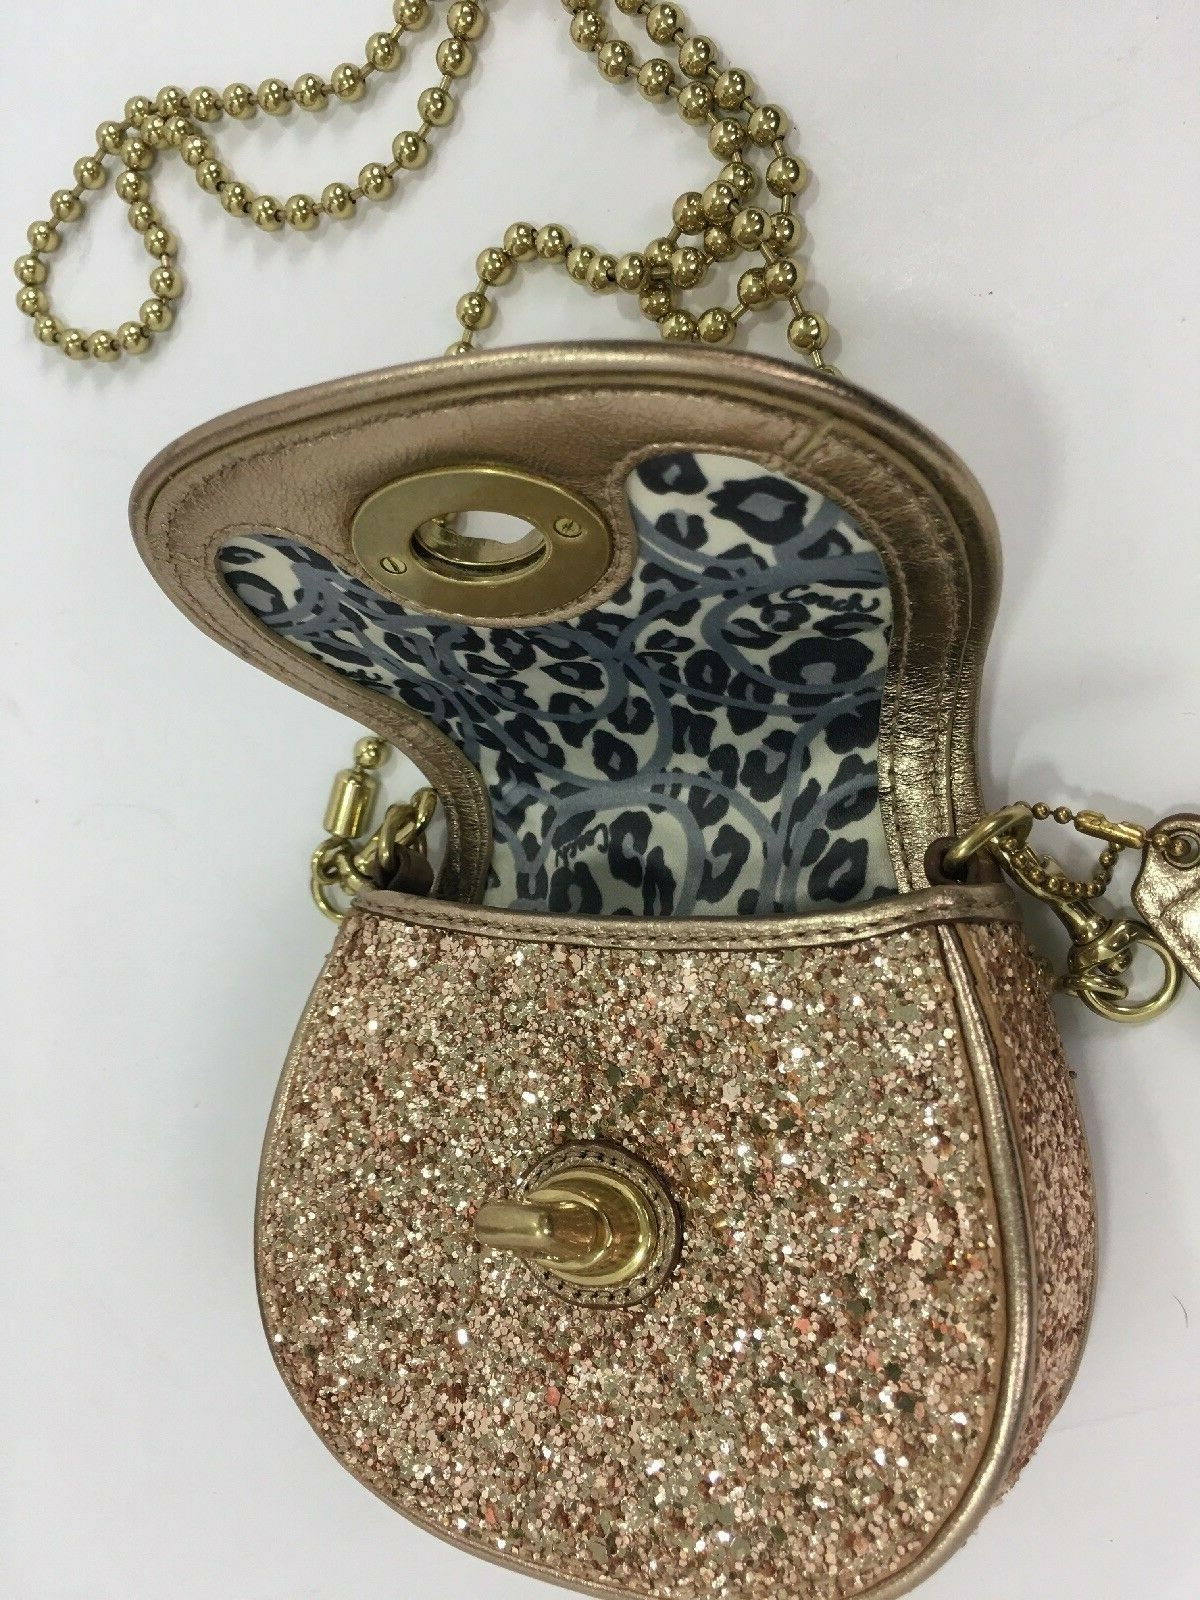 Coach Bag Evening Poppy Gold Sequin Crossbody Leather Chain 43292 Gold B2E image 8